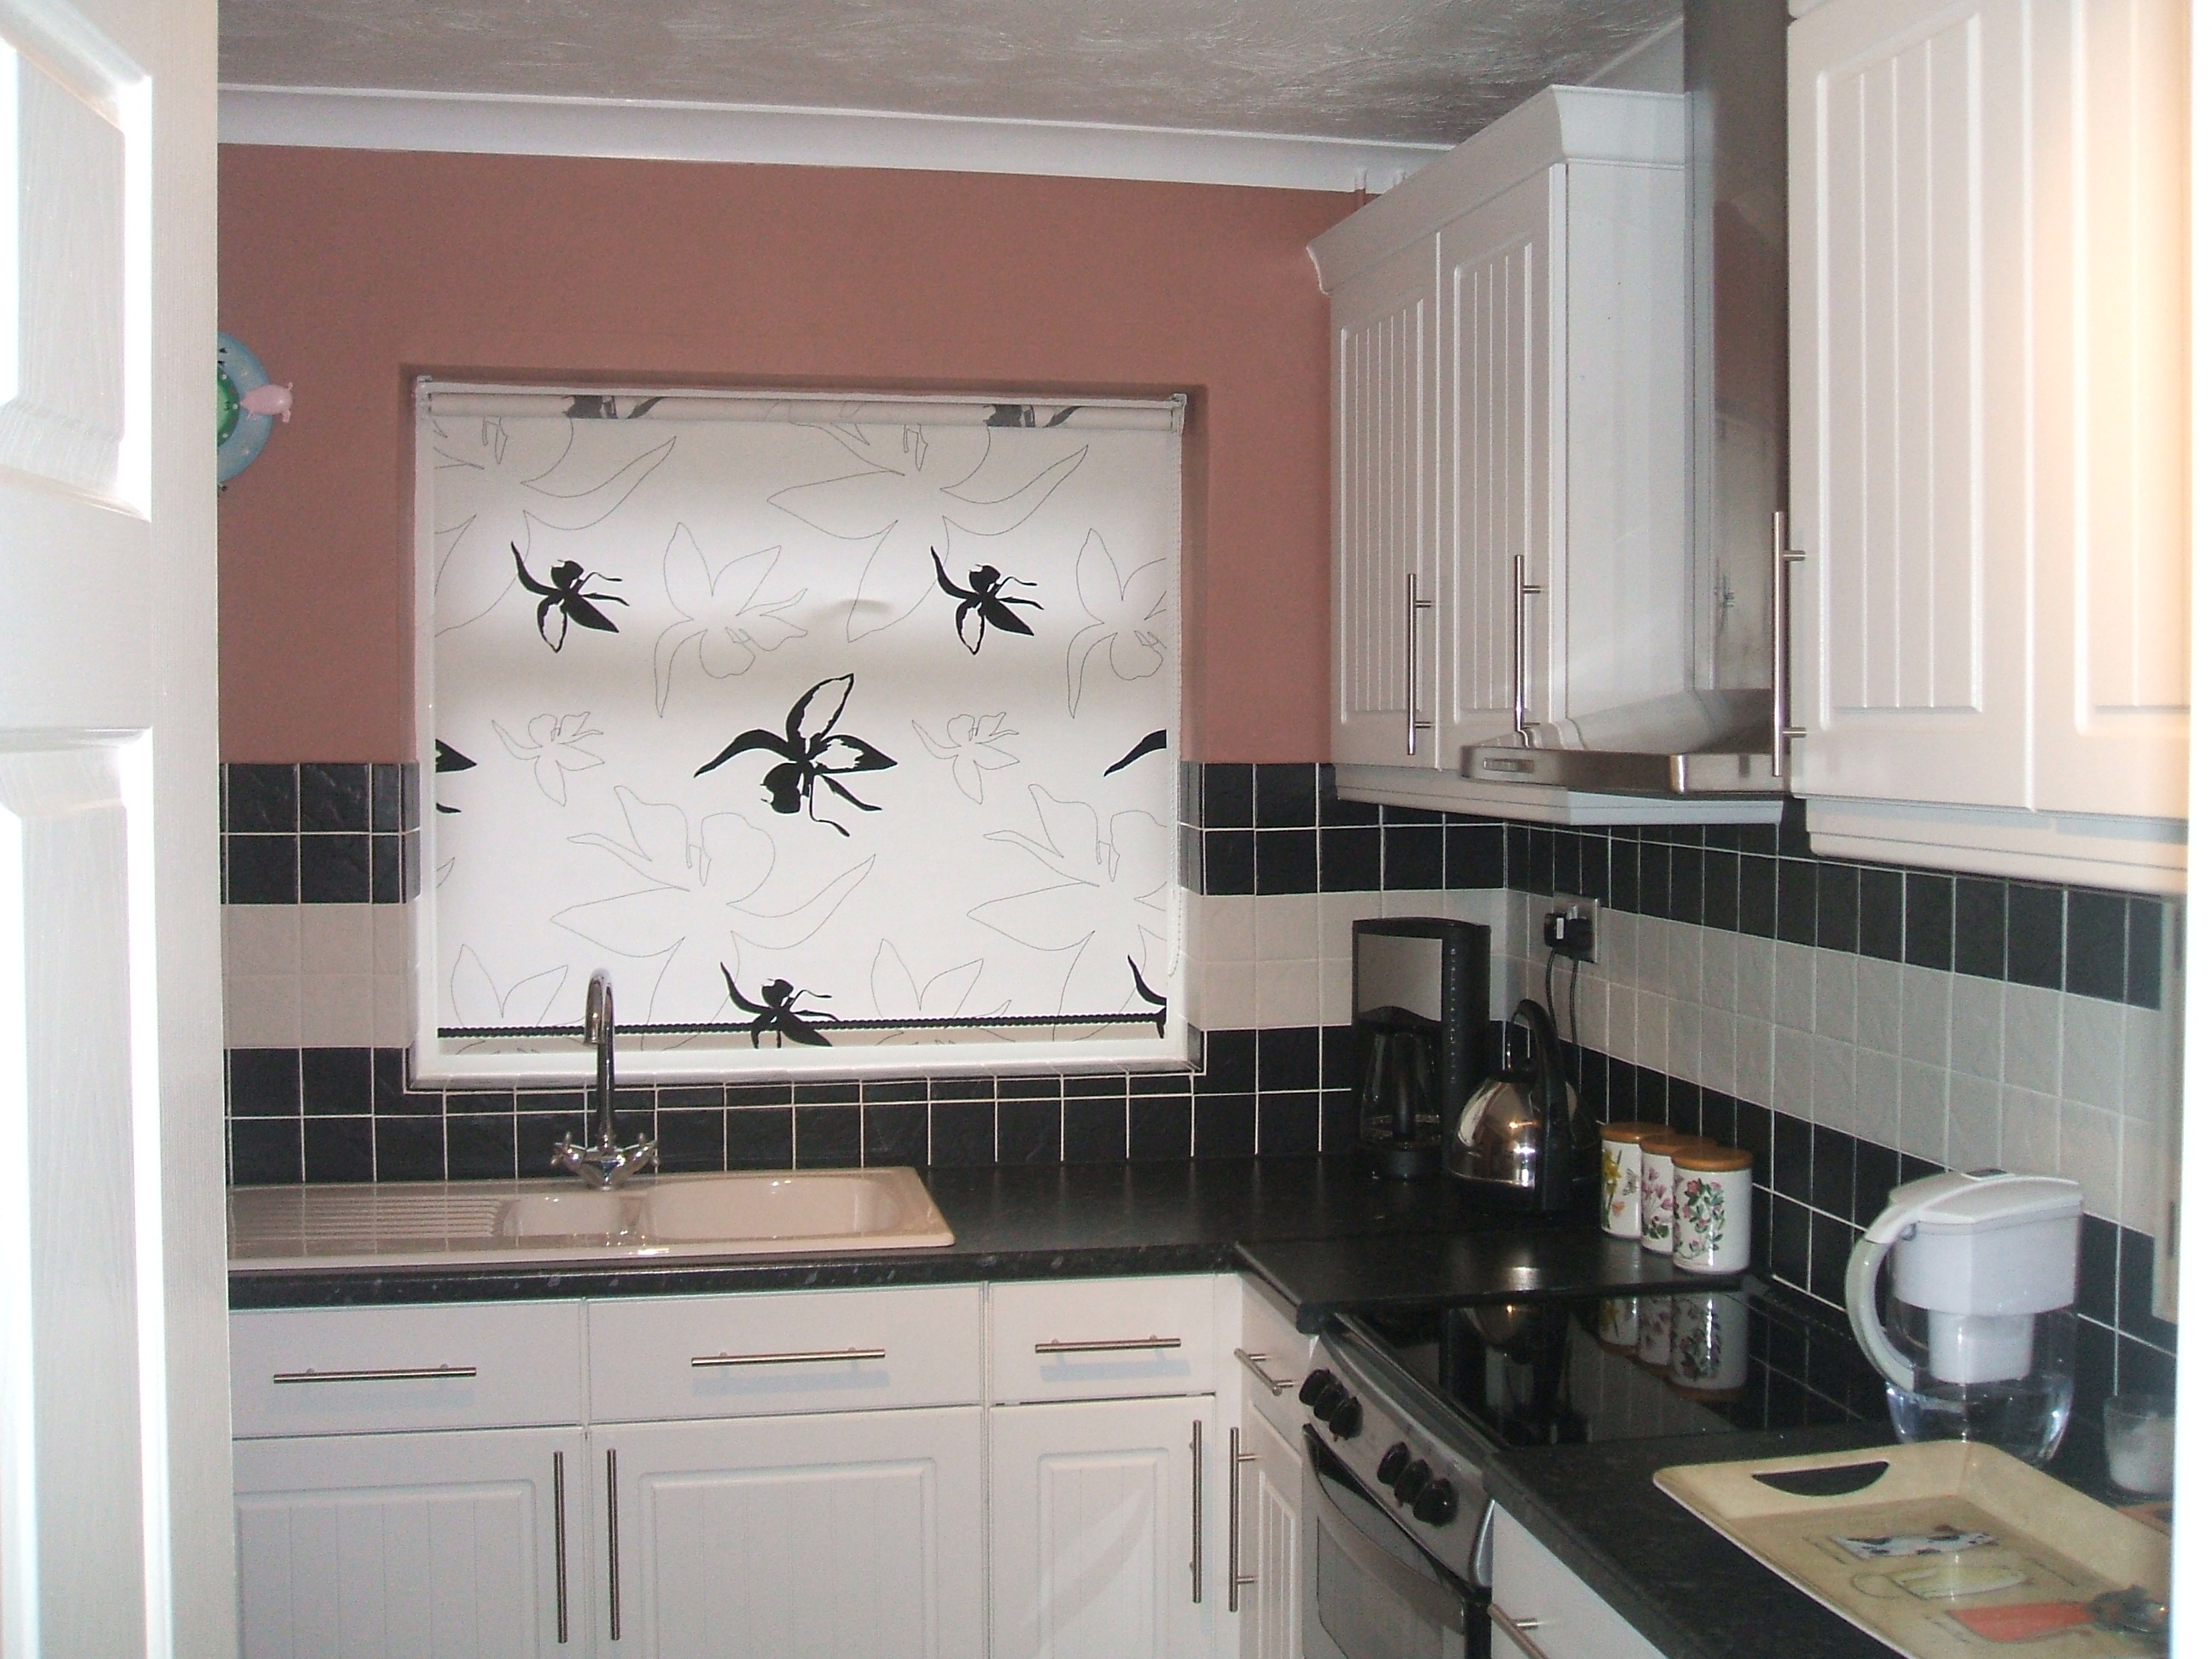 Roller Blinds For Kitchens Similiar Black And White Kitchen Window Shades Keywords